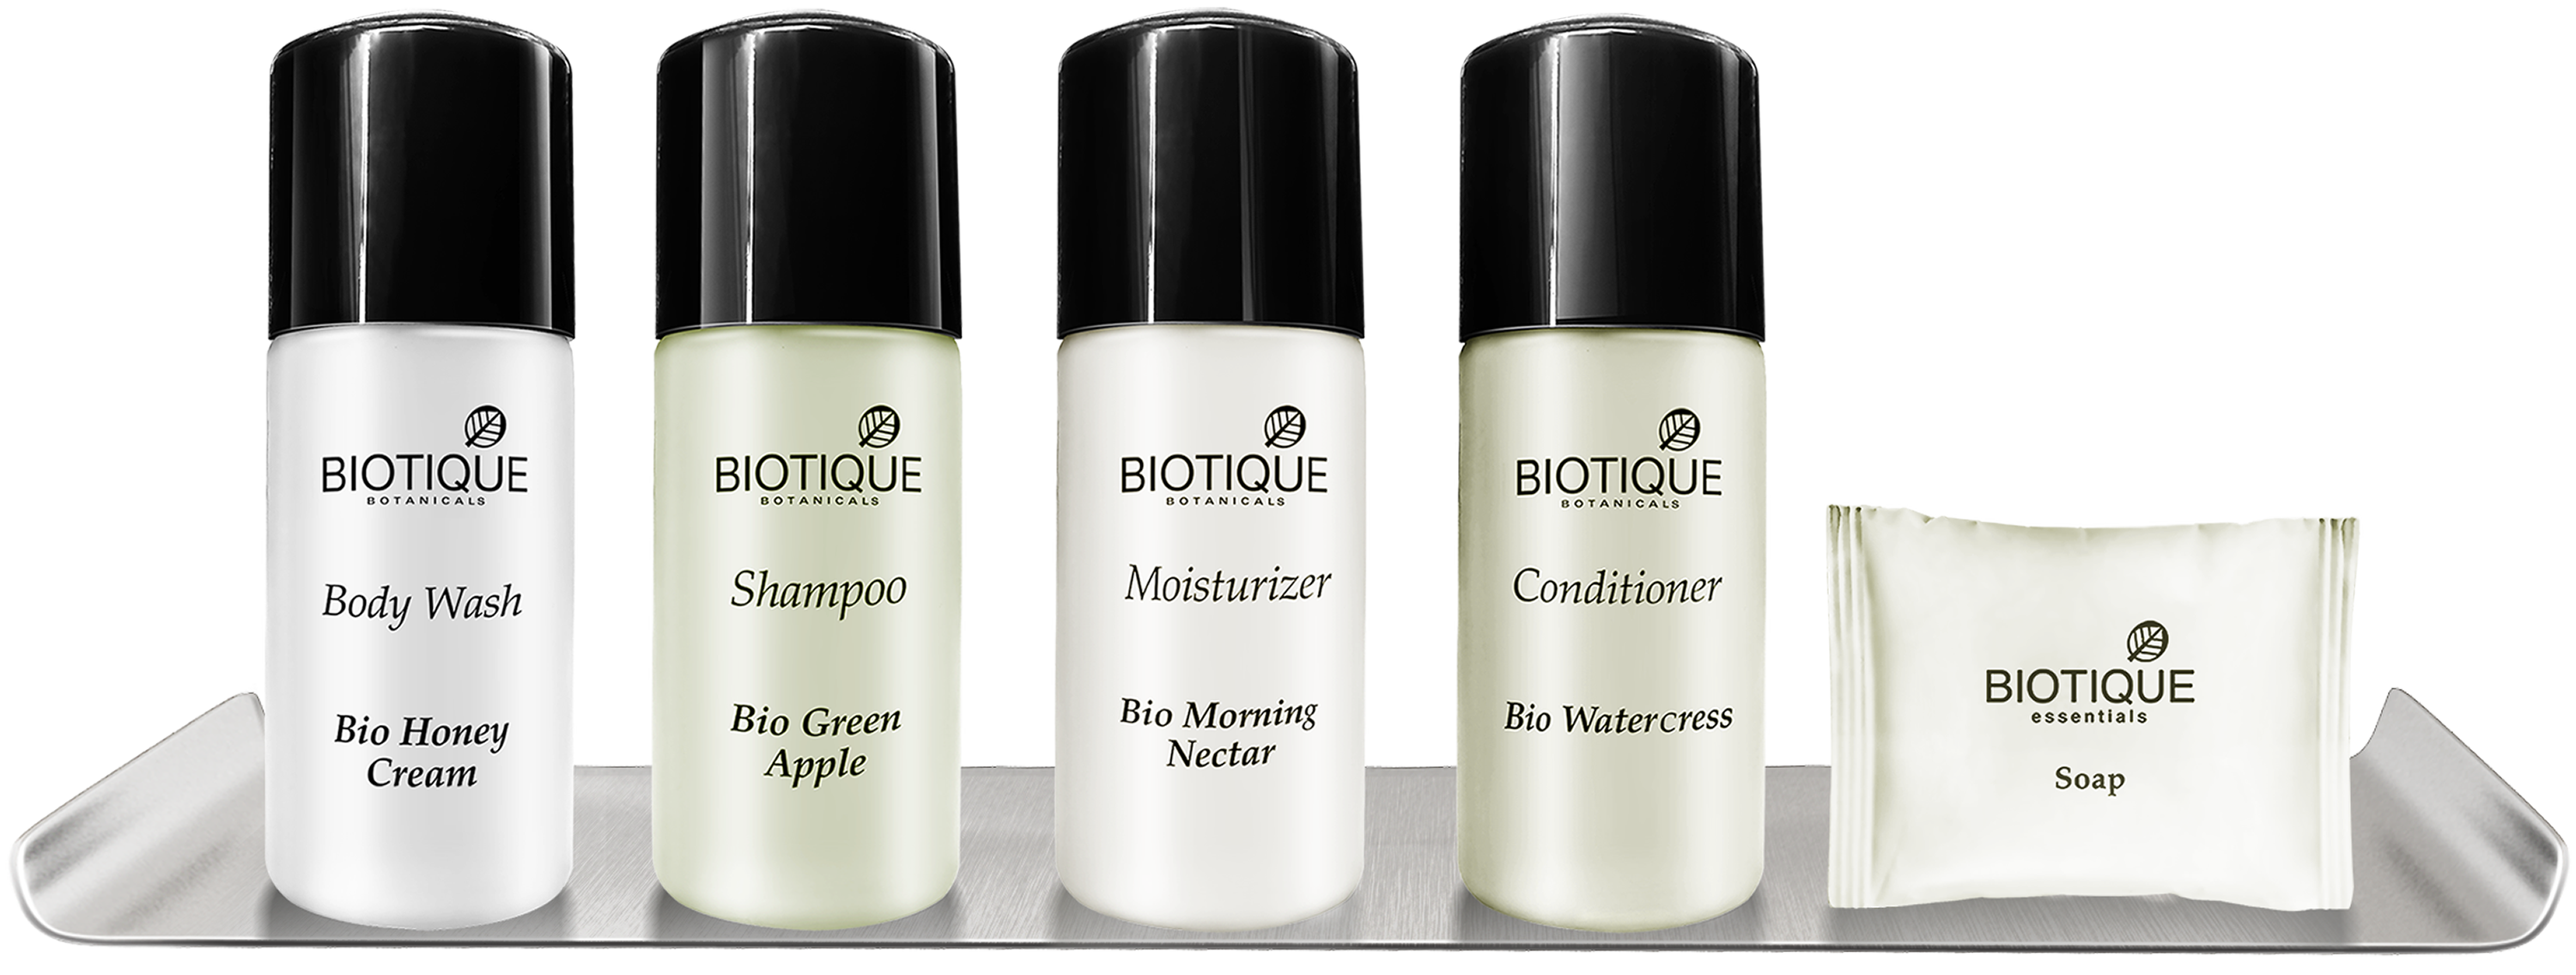 Hotel amenities by Biotique include haircare, skincare and